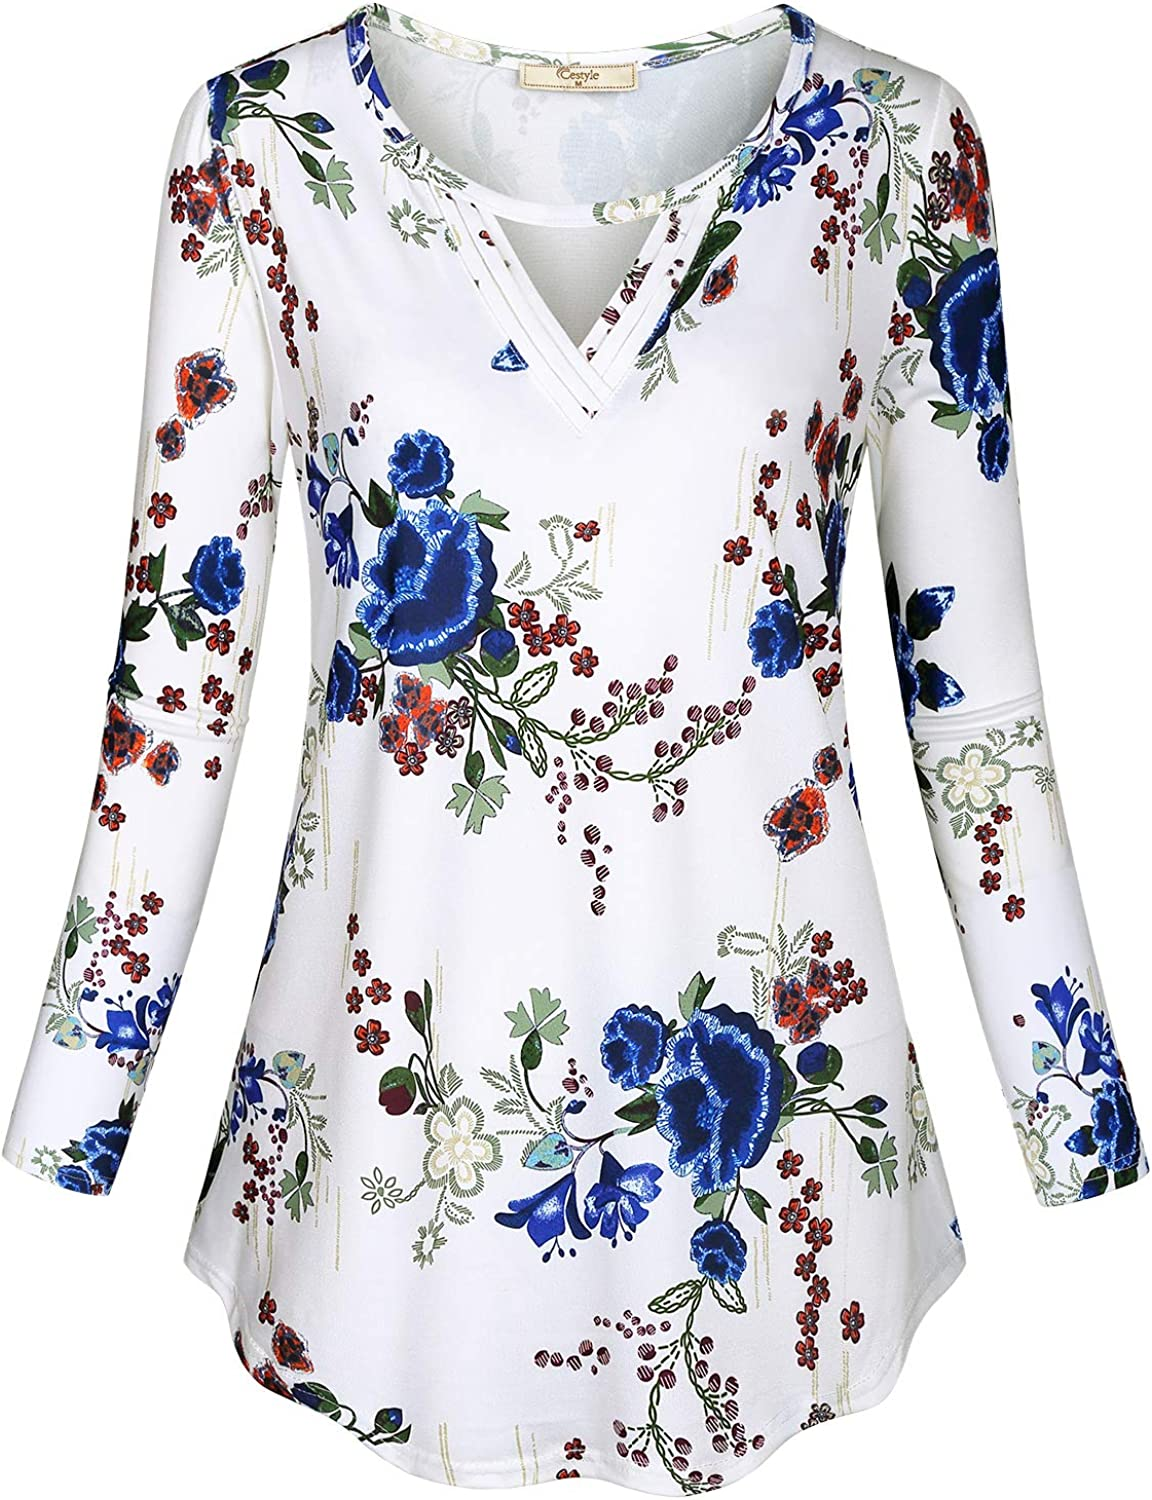 Cestyle Womens Crew Neck Long Sleeve Shirt Front Keyhole Casual Dressy Tunic Top